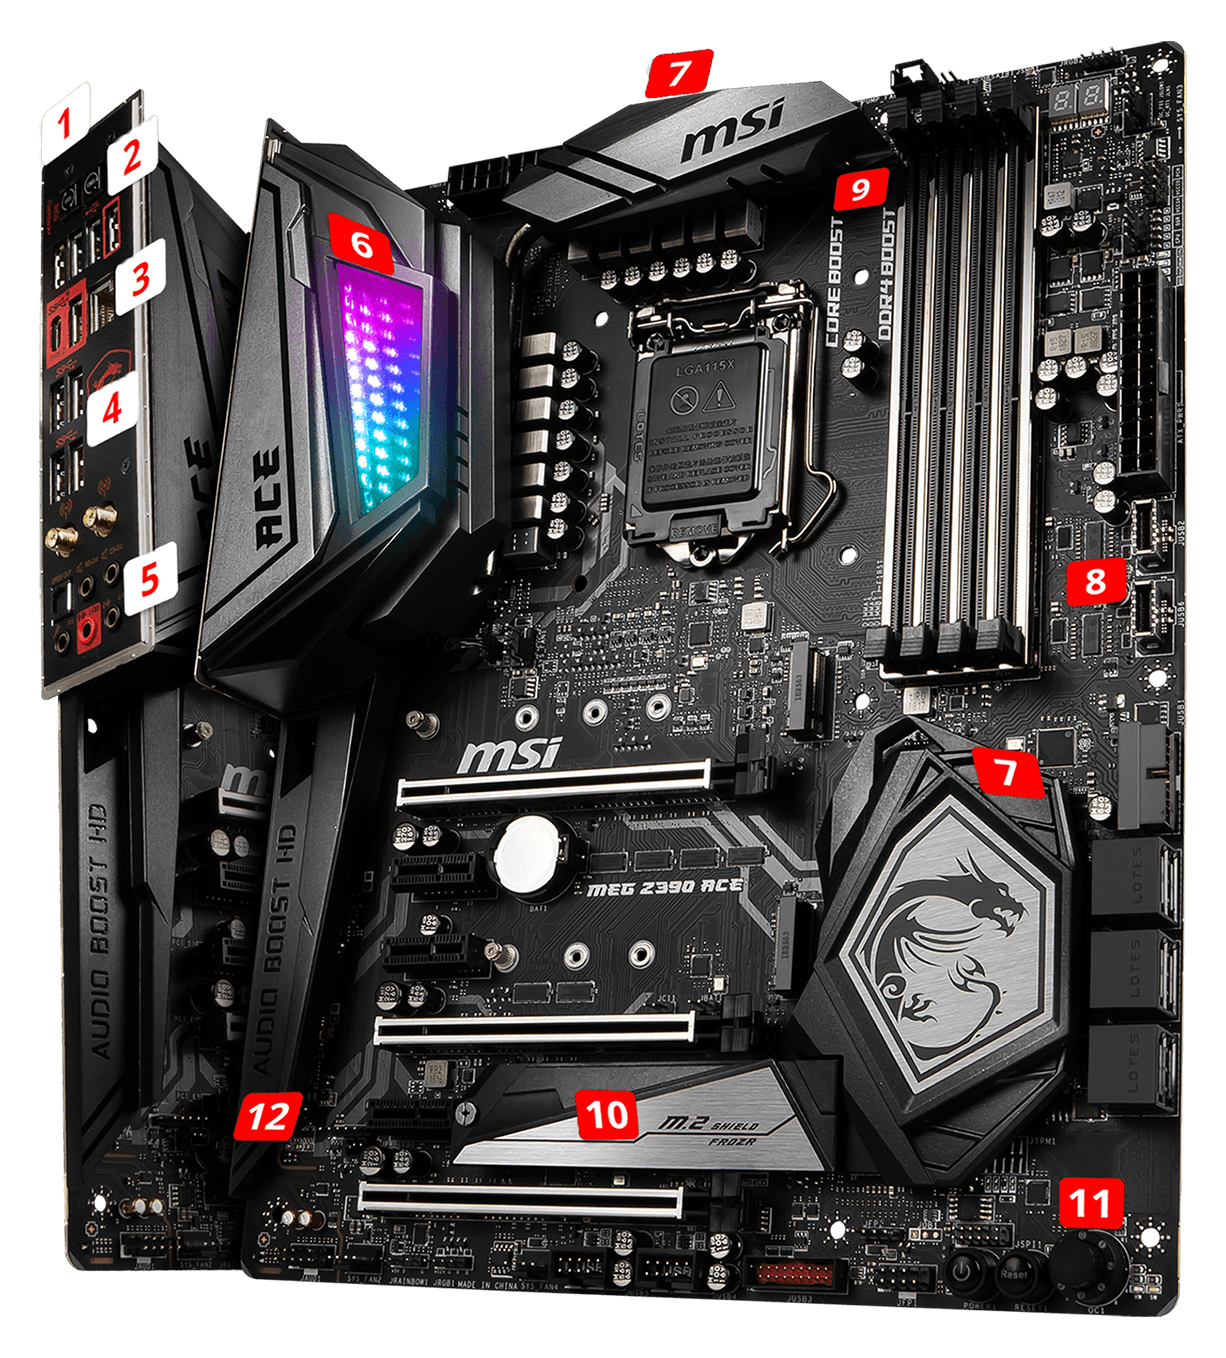 MSI MEG Z390 ACE overview